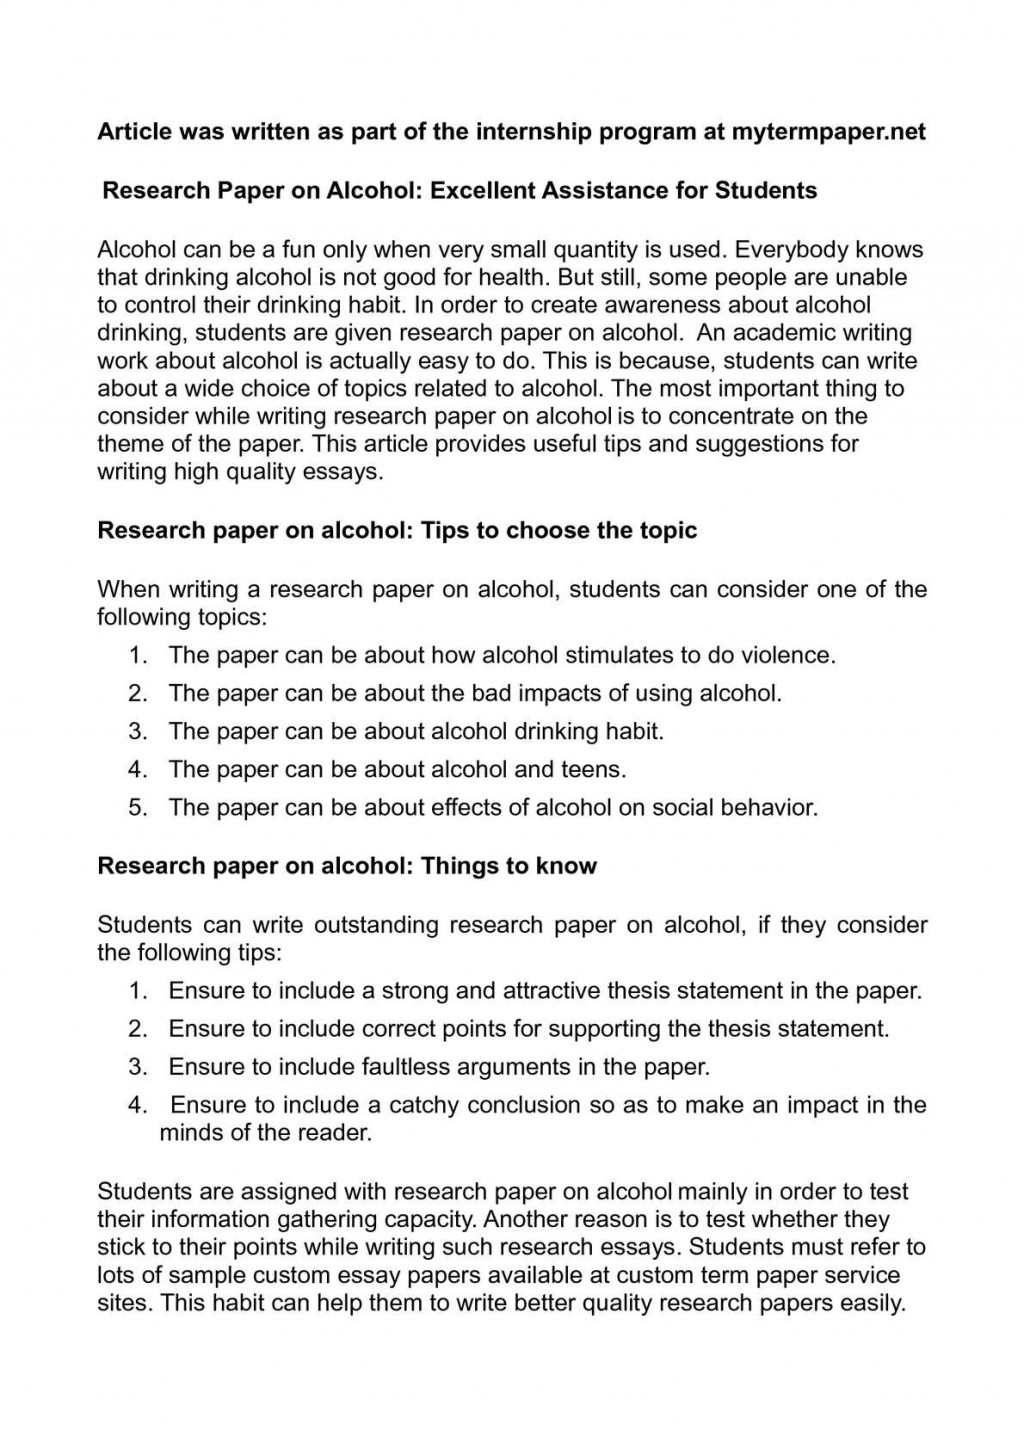 001 Research Paper On Alcohol Awesome Alcoholism And Family Articles Sample Substance Abuse Large